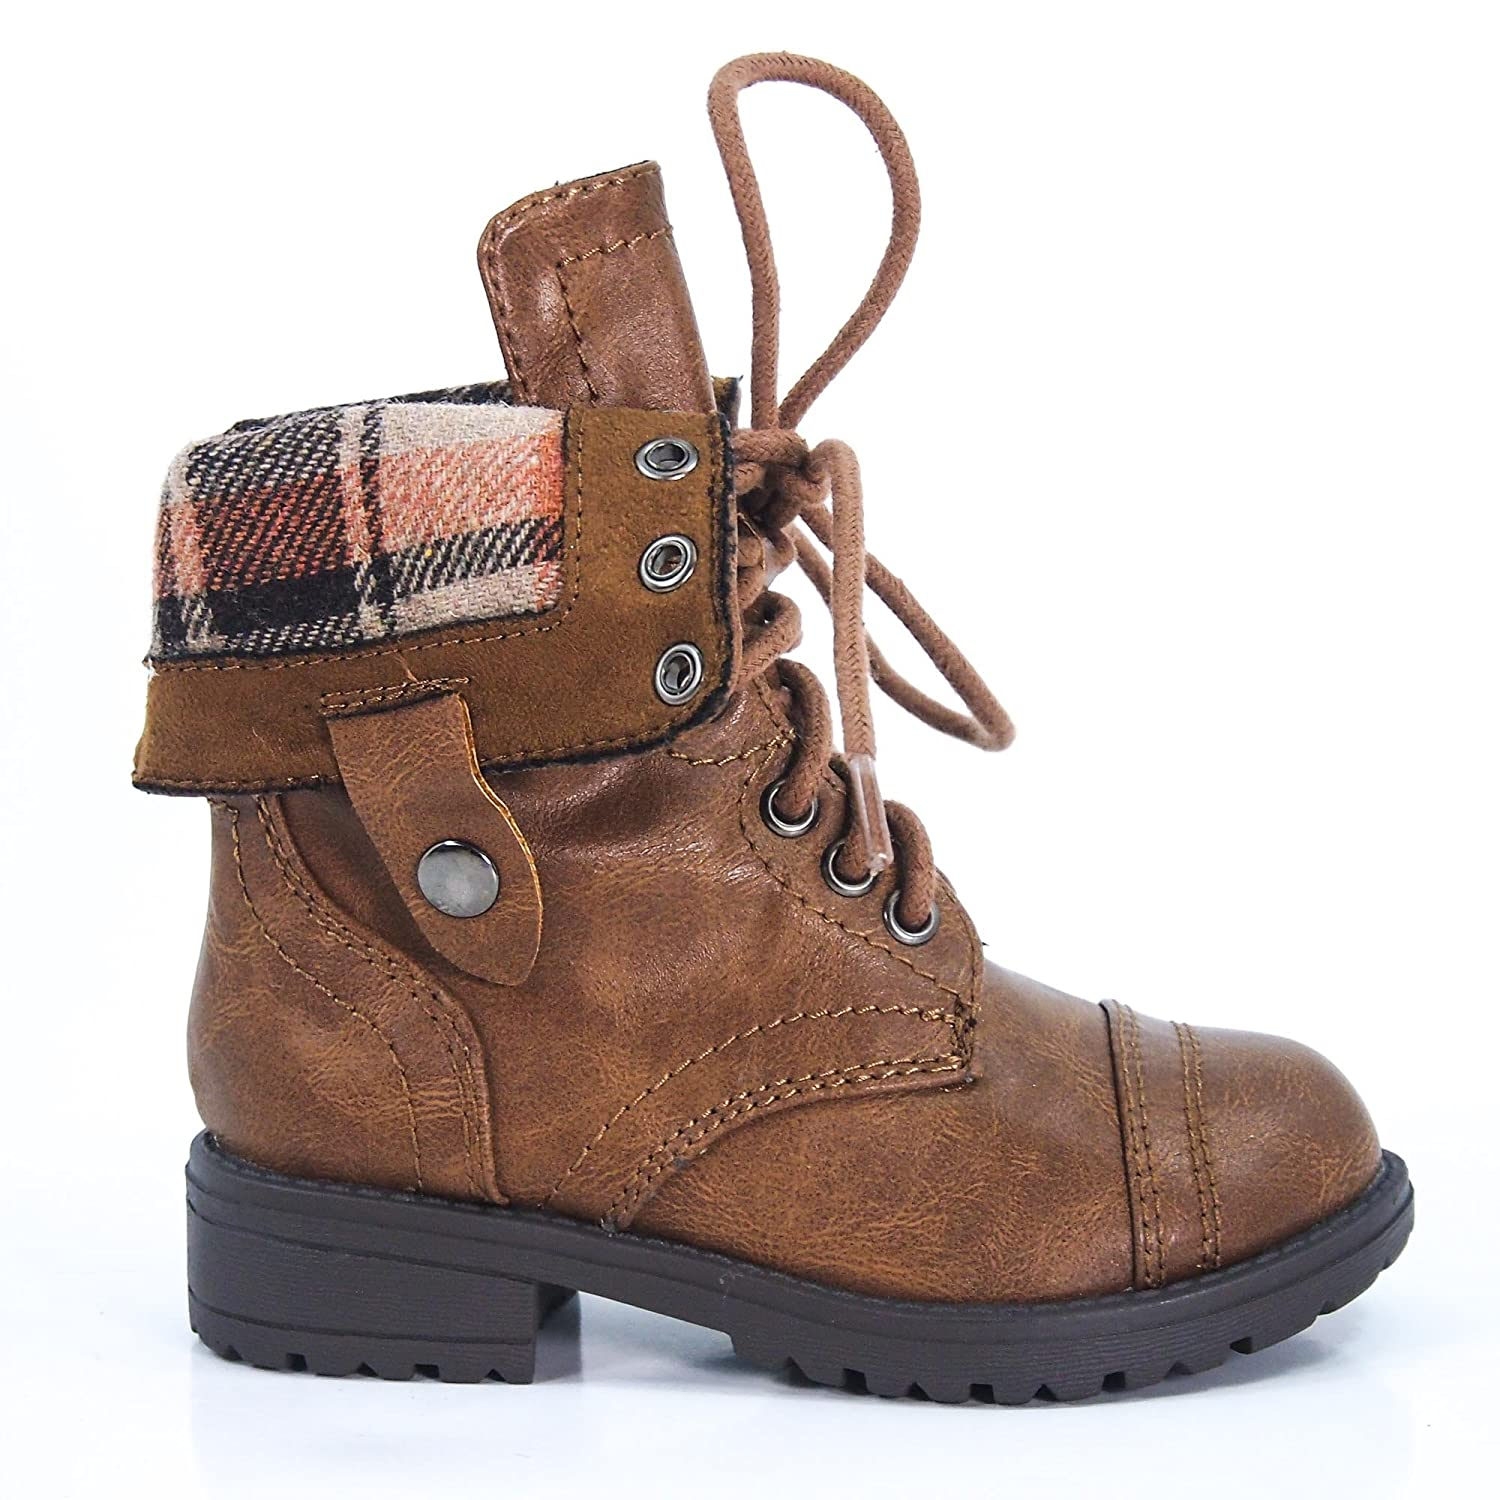 OraleeII Fold Down Military Boot Winter Lace-Up Sturdy Children's Shoe